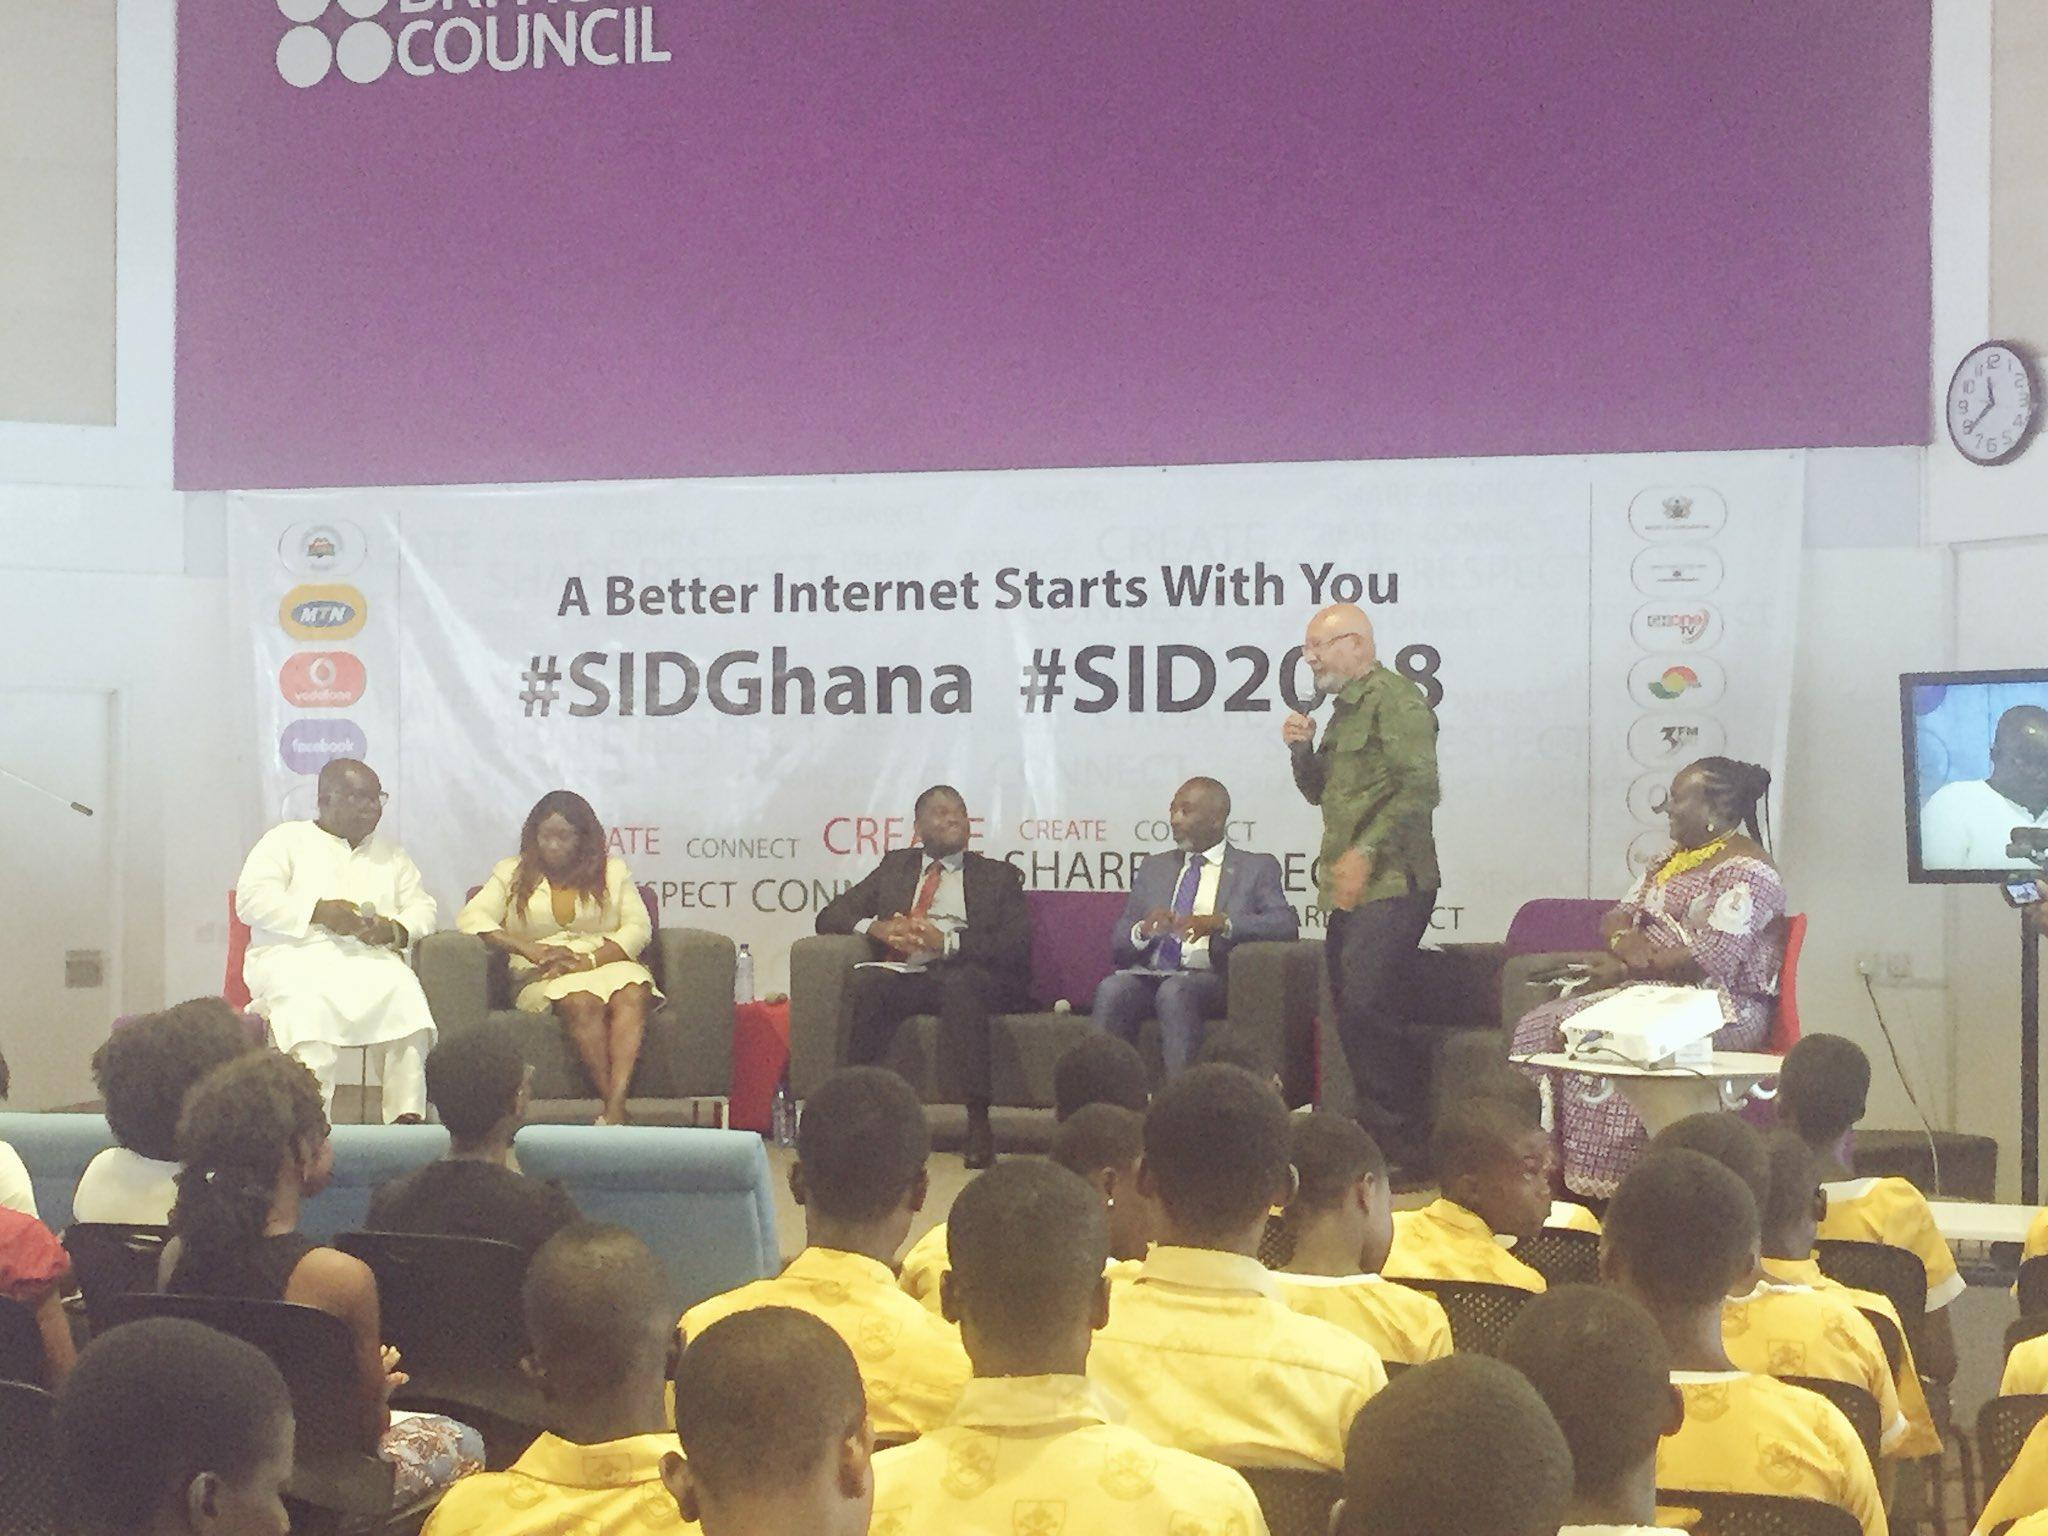 J Initiative celebrates Safer Internet Day 2018 in all 10 Regions of Ghana